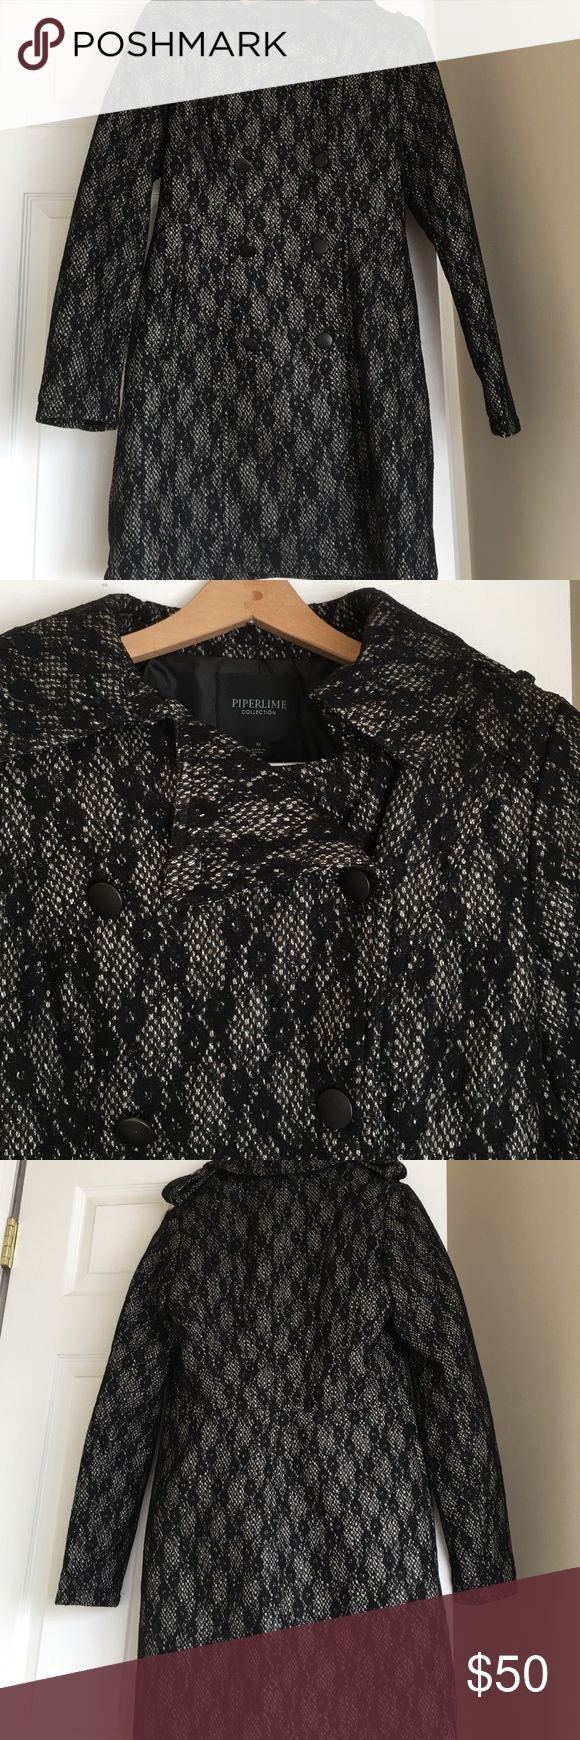 New! No tags never worn medium piperlime lace coat New! No tags never worn medium piperlime lace coat! Lace black white and hints of gold. Never worn and has two button military style top buttons on top shoulders. Cute coat just not my style! Piperlime Jackets & Coats Pea Coats